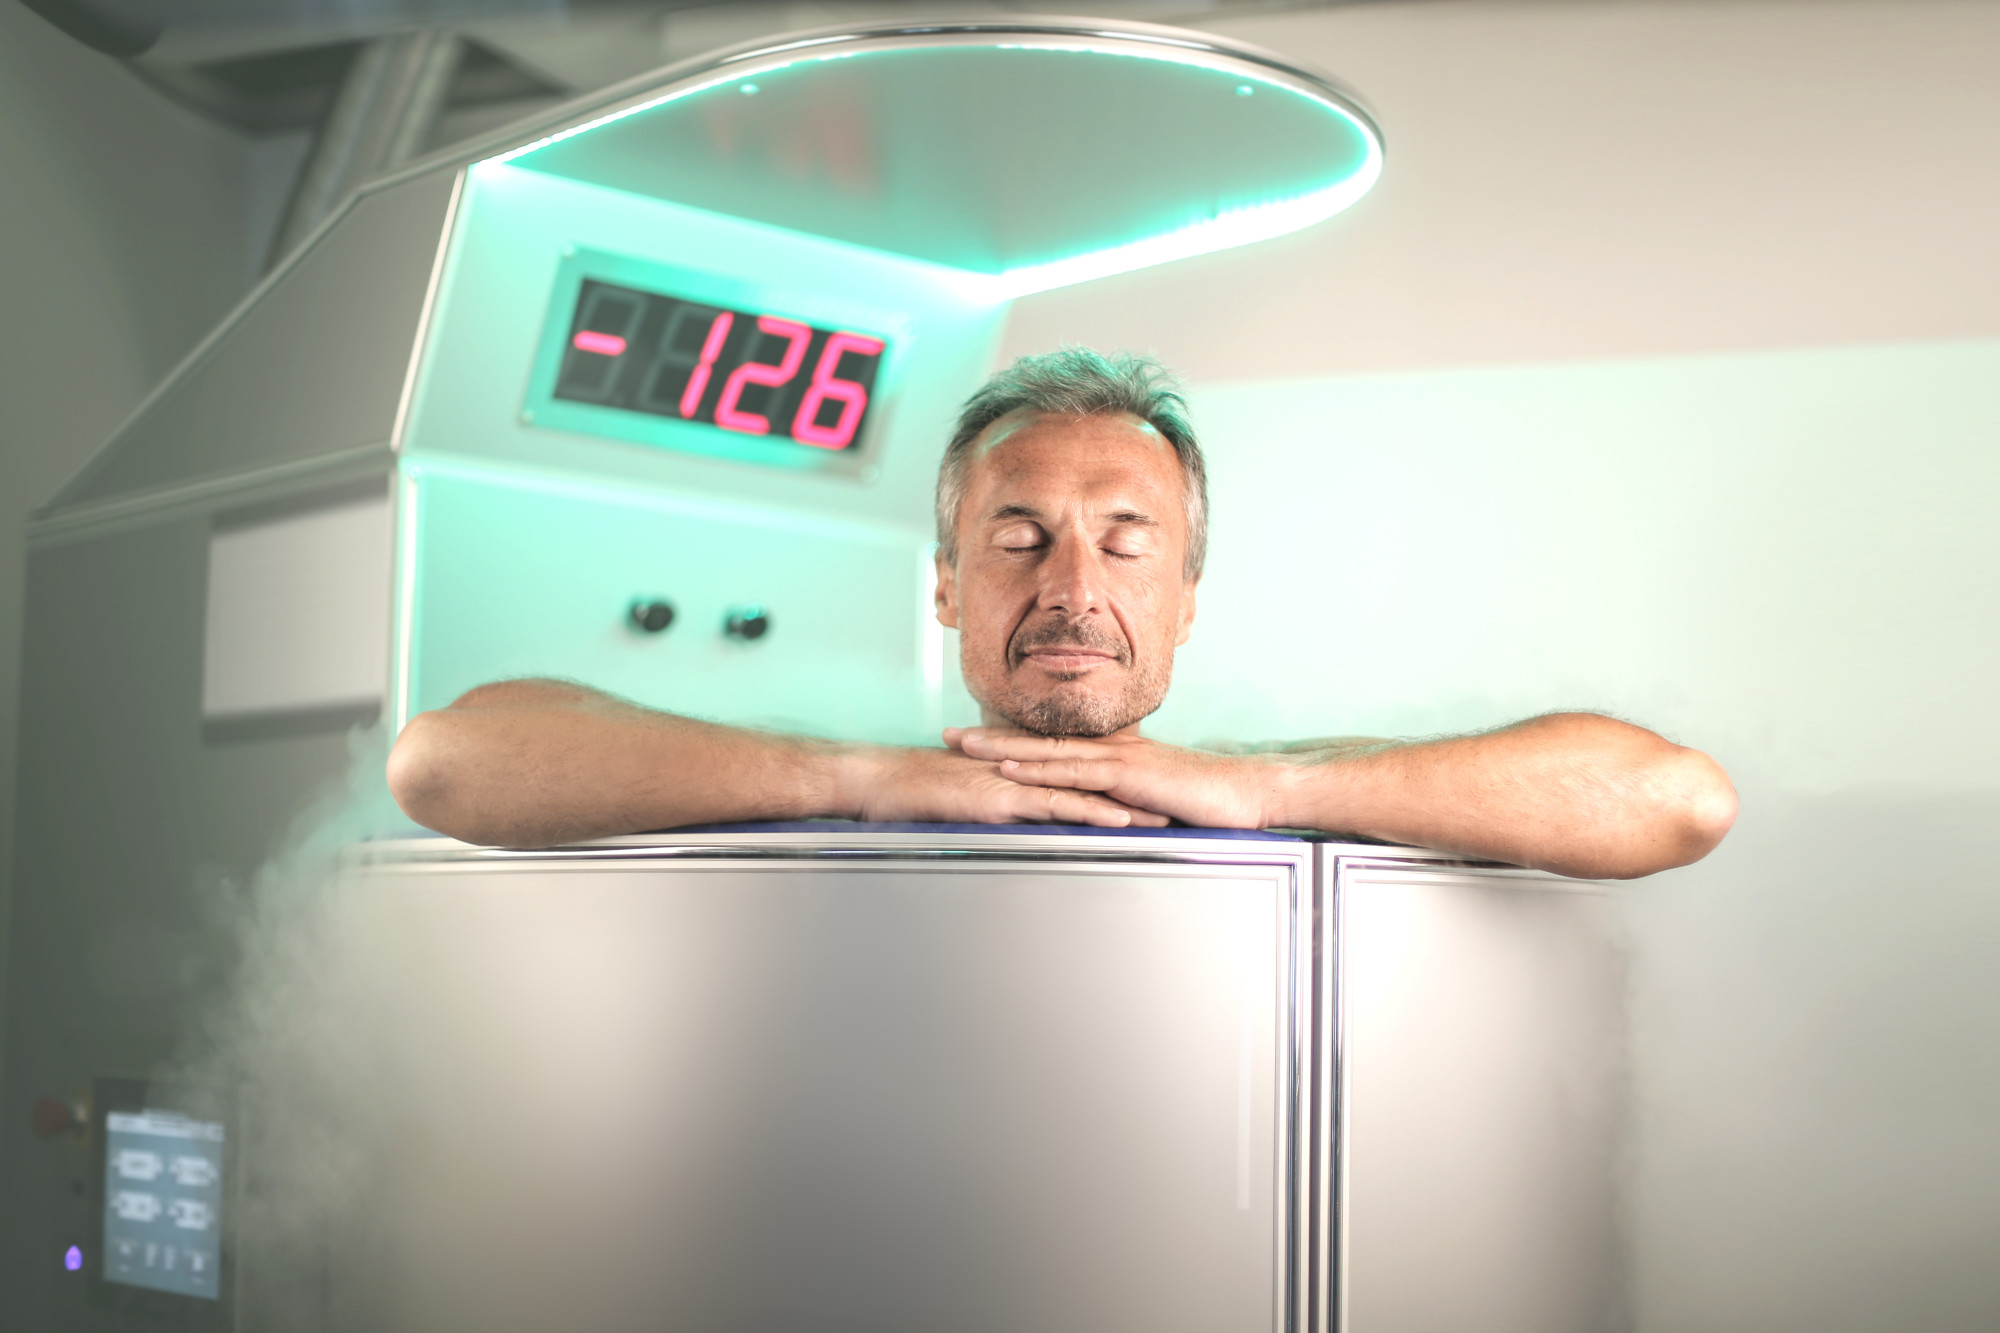 Majestic Cryo: What to Know Before Buying Their Cyrotherapy